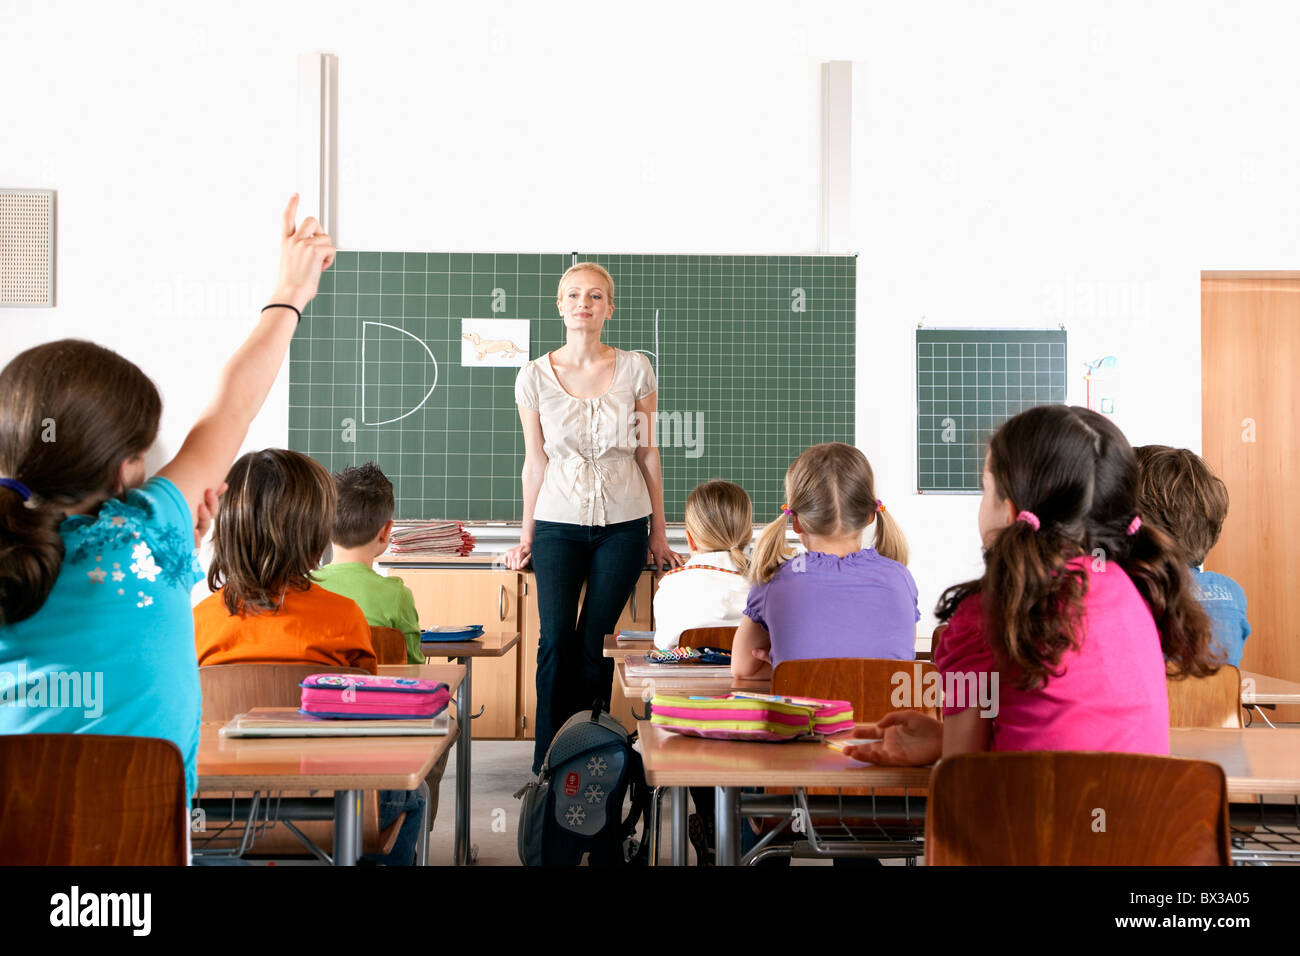 Female Teacher In Front Of Class Stock Photo Royalty Free